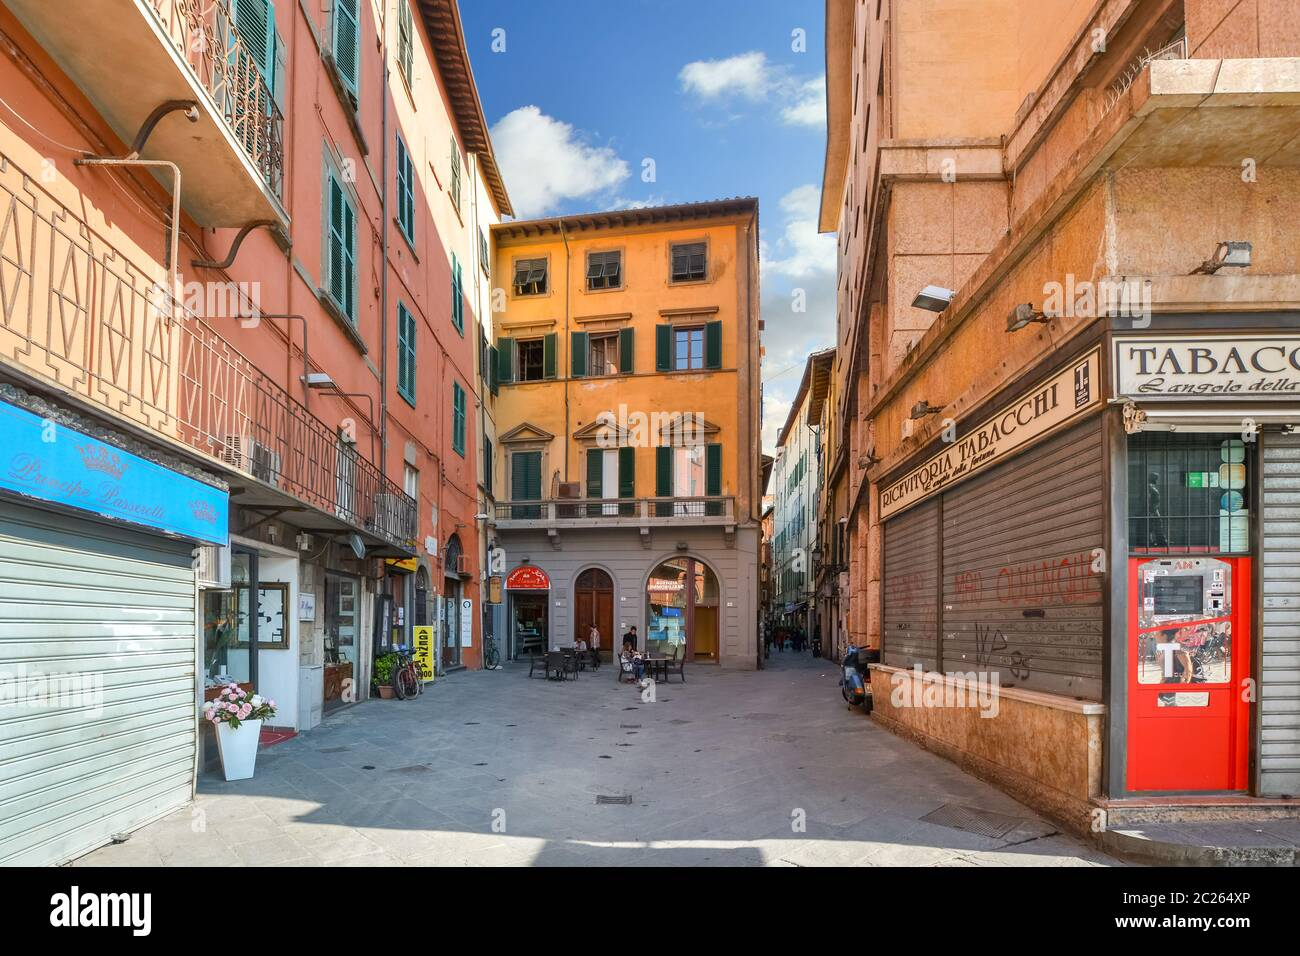 A very small sidewalk cafe opens for business alongside a narrow street in Pisa Italy Stock Photo